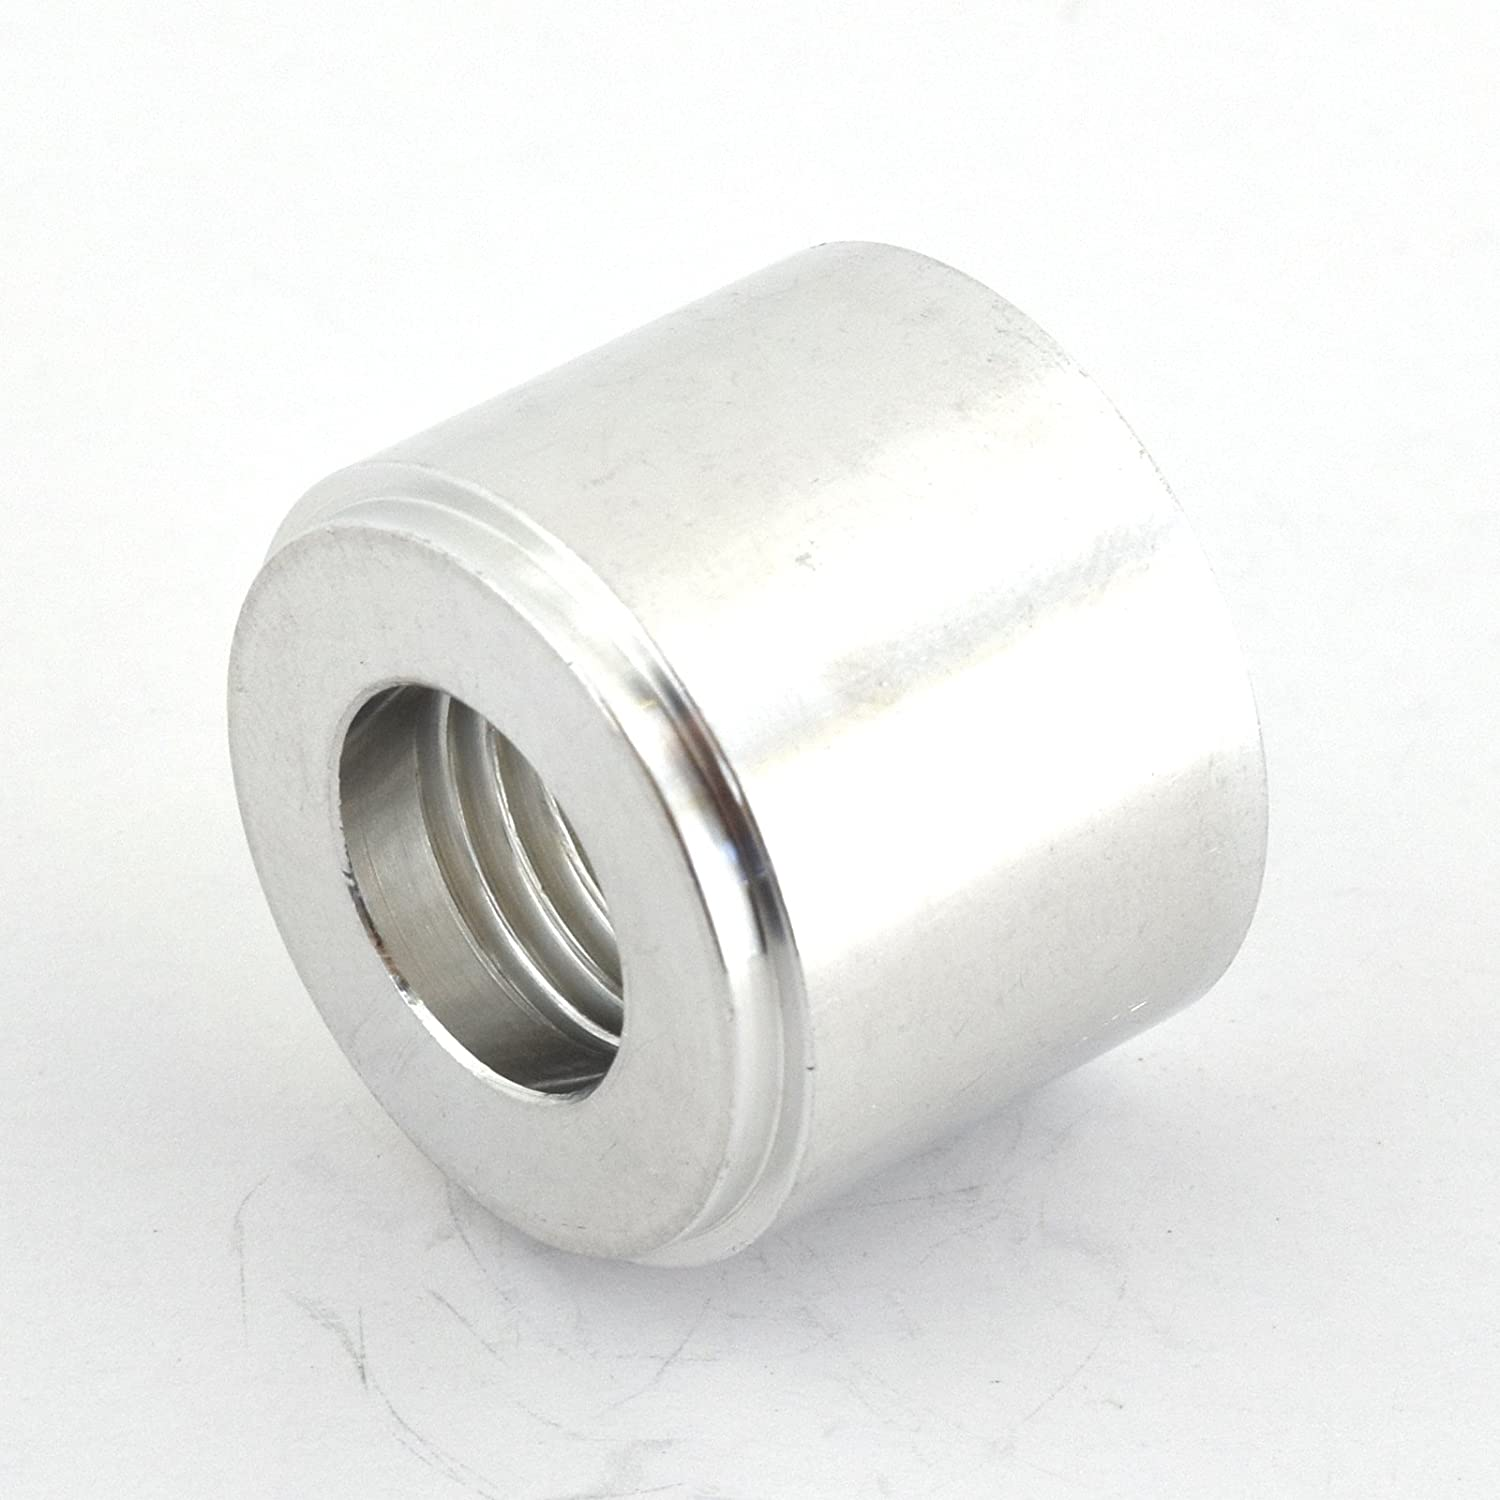 Oil Kraken Automotive Silver 1//4 NPT Straight Aluminum Weld-On Female Bung for Fuel Coolant and Air